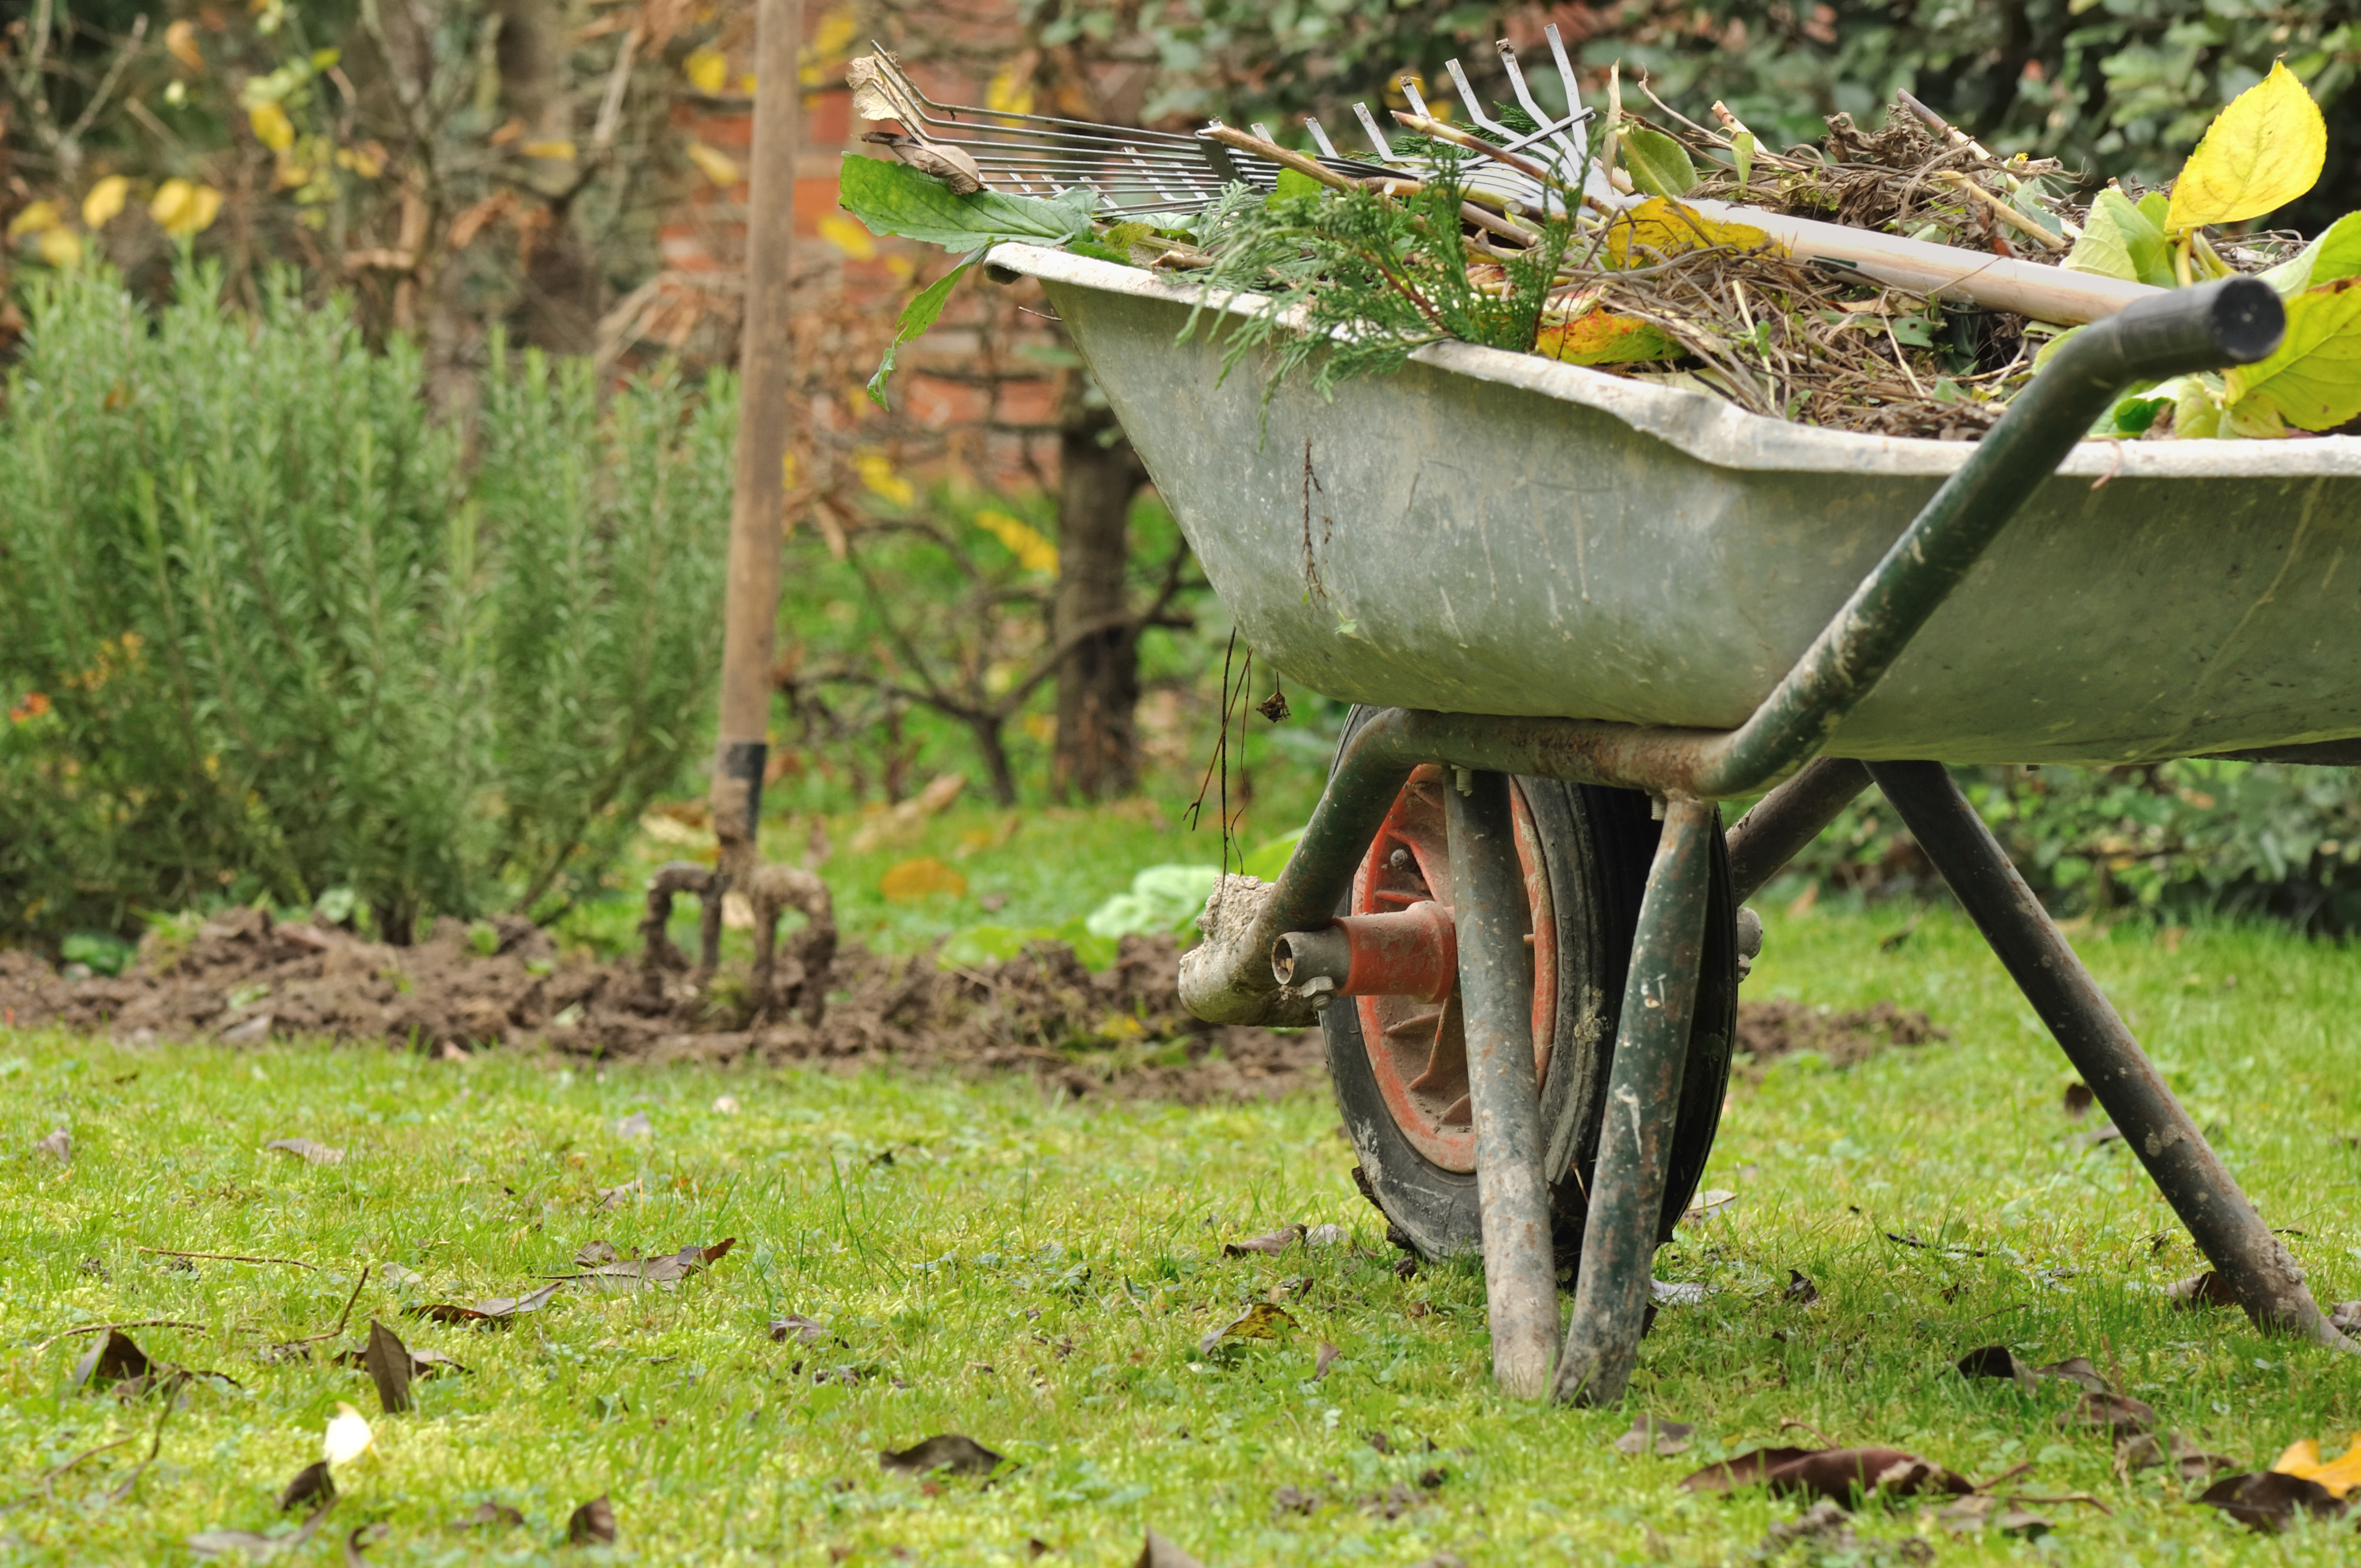 One small effort is keeping and reusing organic matter as close to home as possible rather than sending it to the curb.